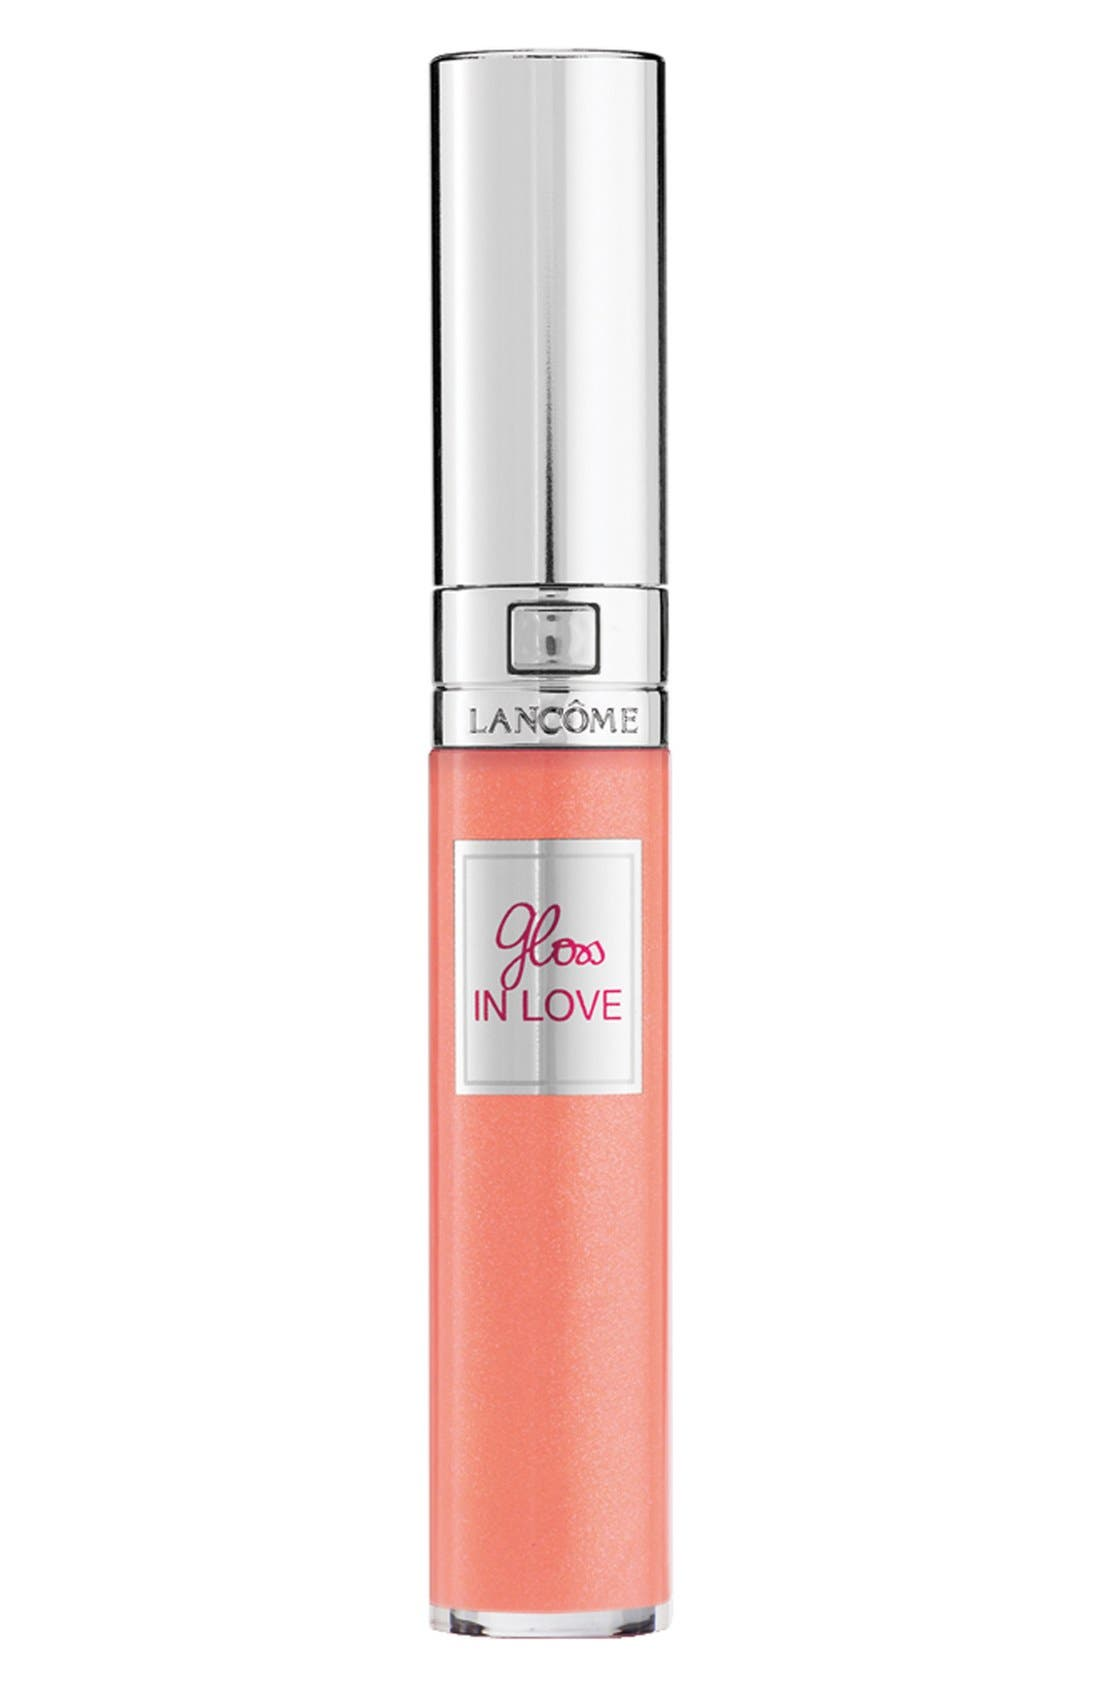 Gloss In Love Moisturizing Lip Gloss,                             Main thumbnail 1, color,                             800